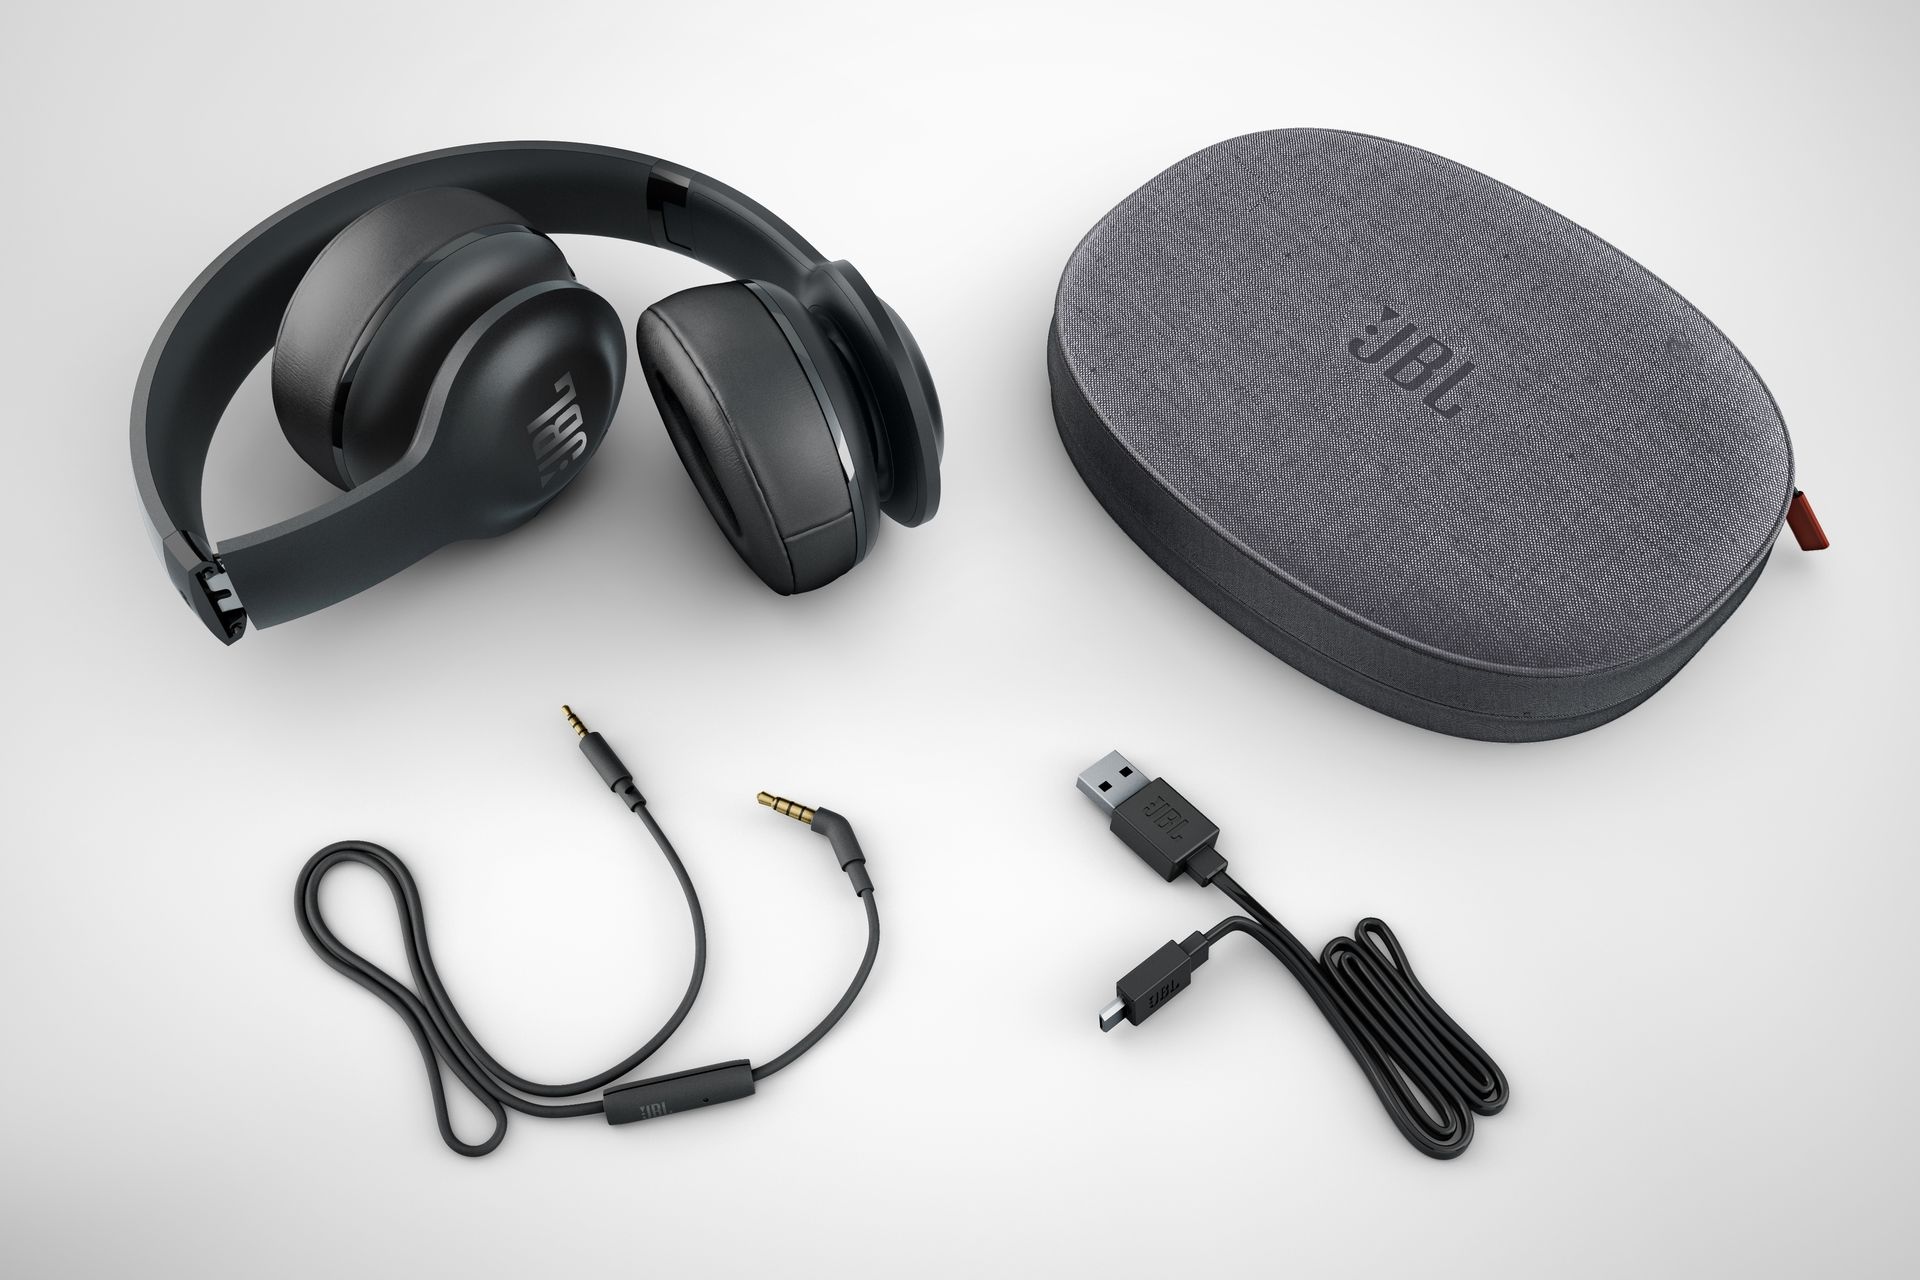 Concours Gagnez 4 Casques Jbl Everest 300 Page 1 Gamalive